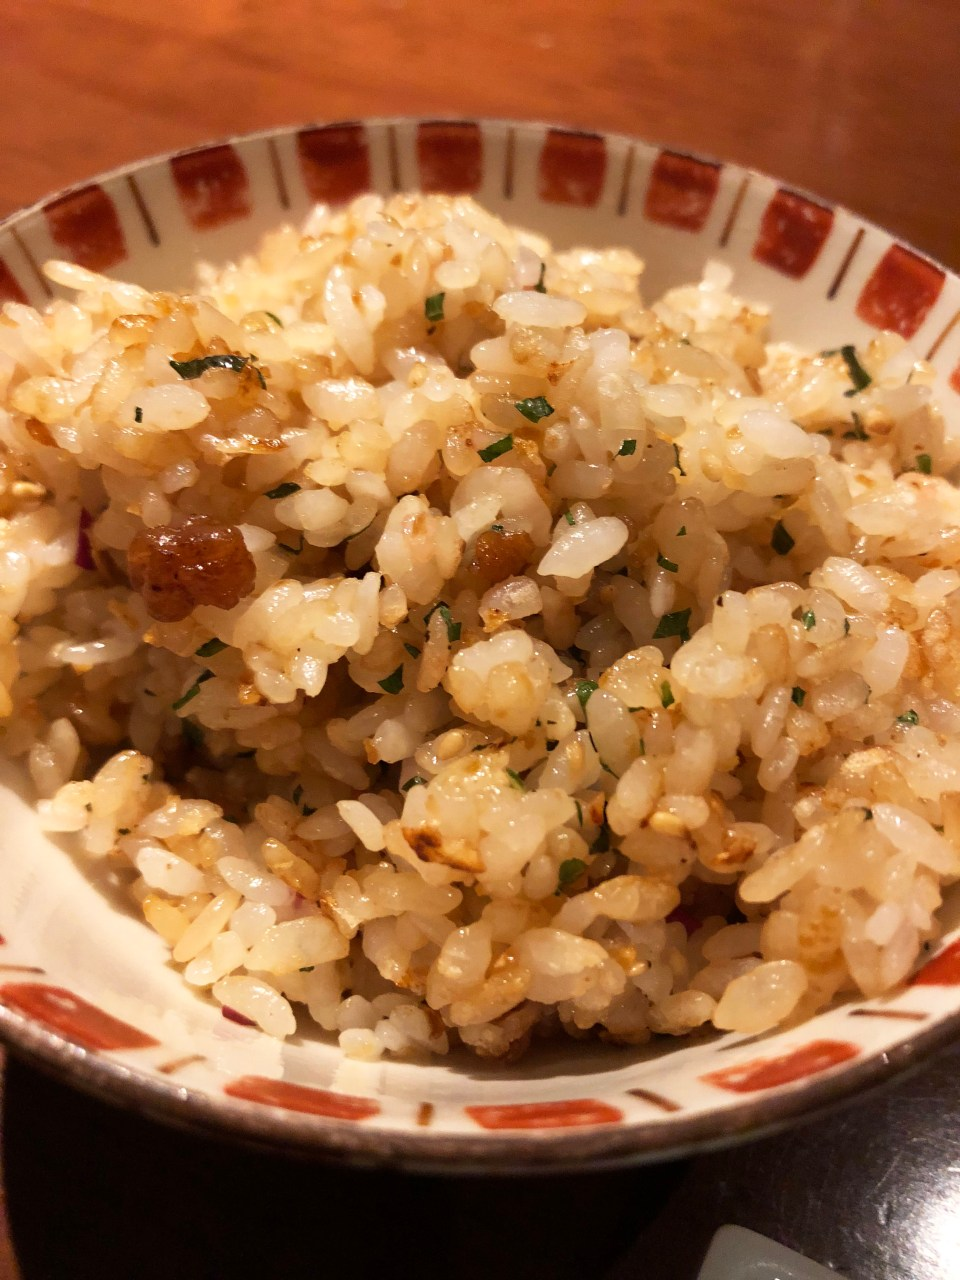 Junisoh - Garlic Fried Rice